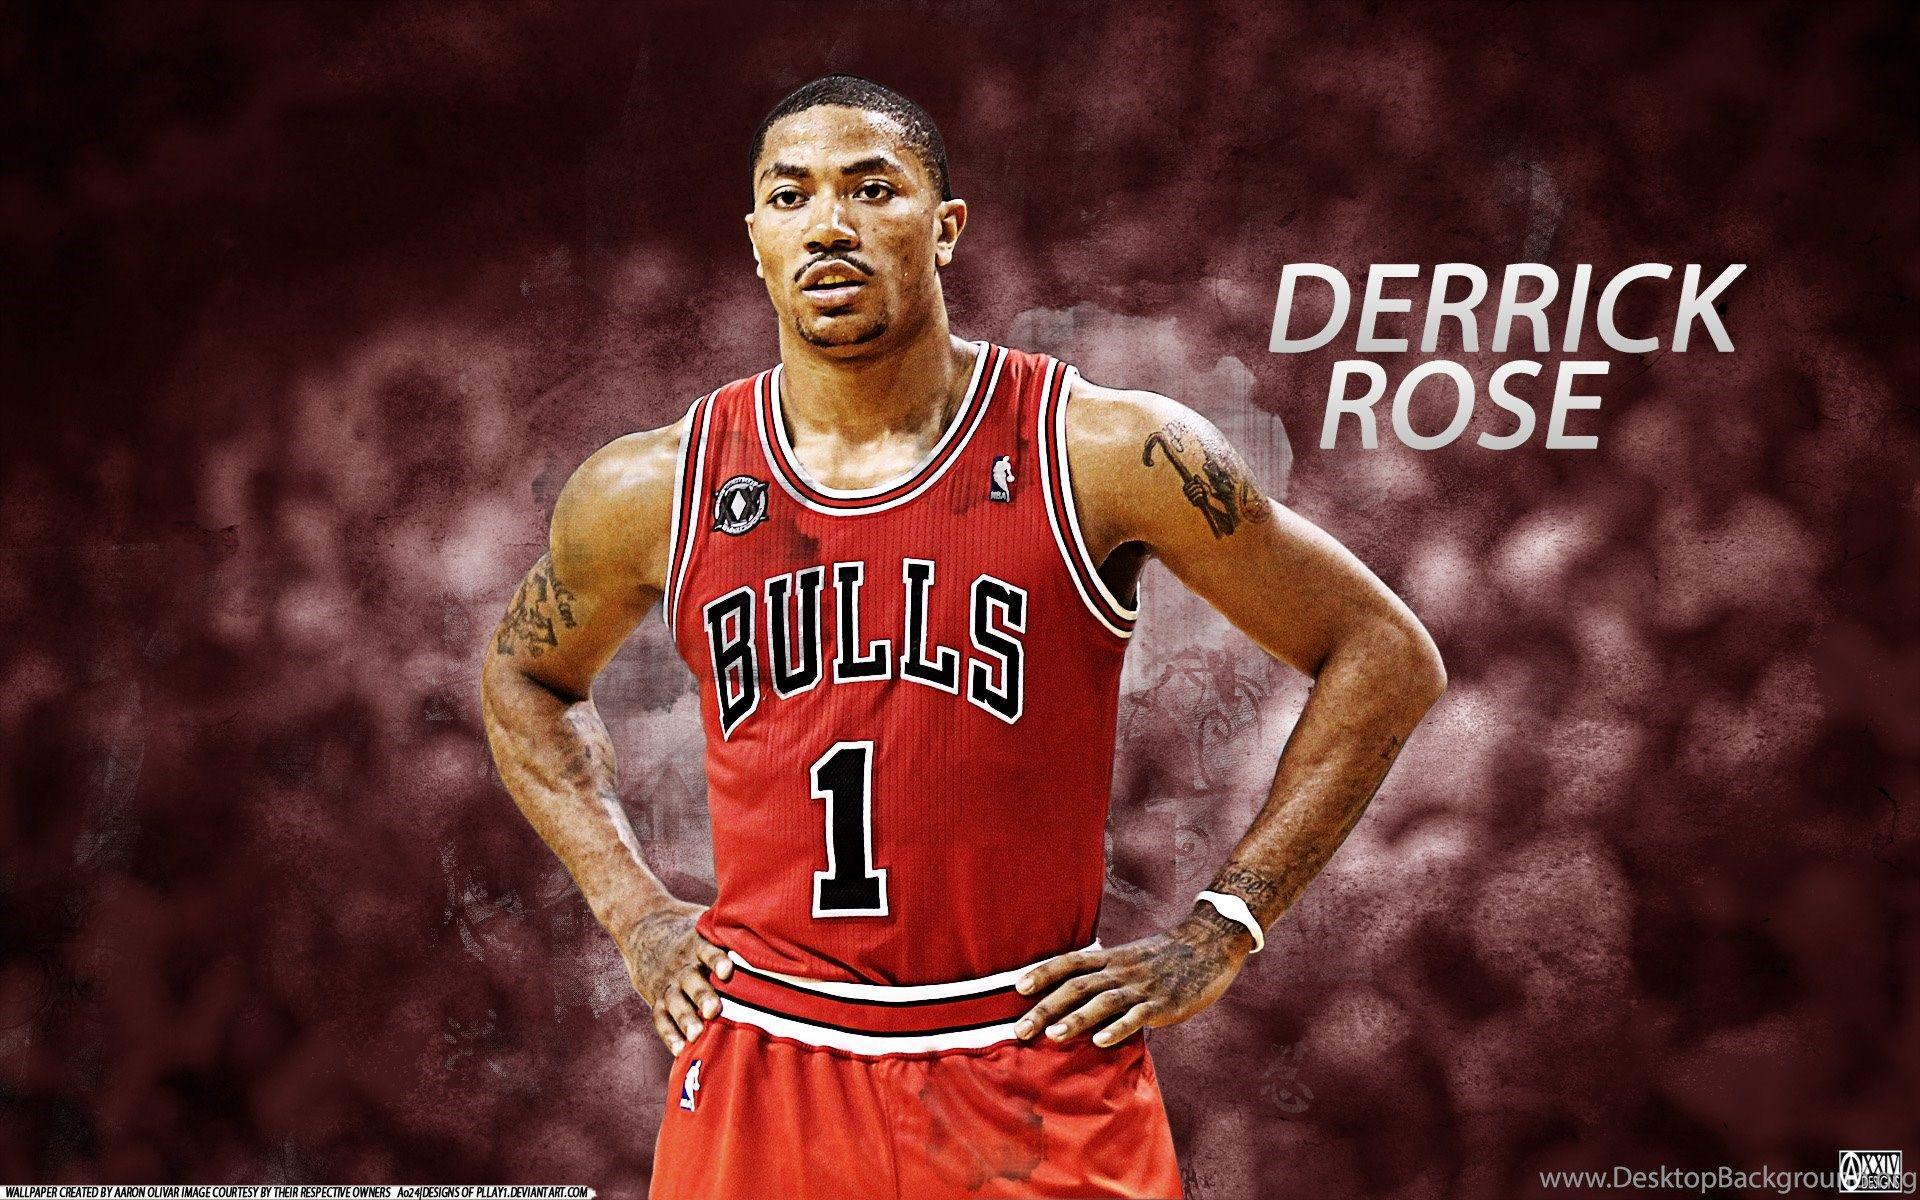 ce1e369e3995 Images Of Derrick Rose Wallpapers HD Base Desktop Background